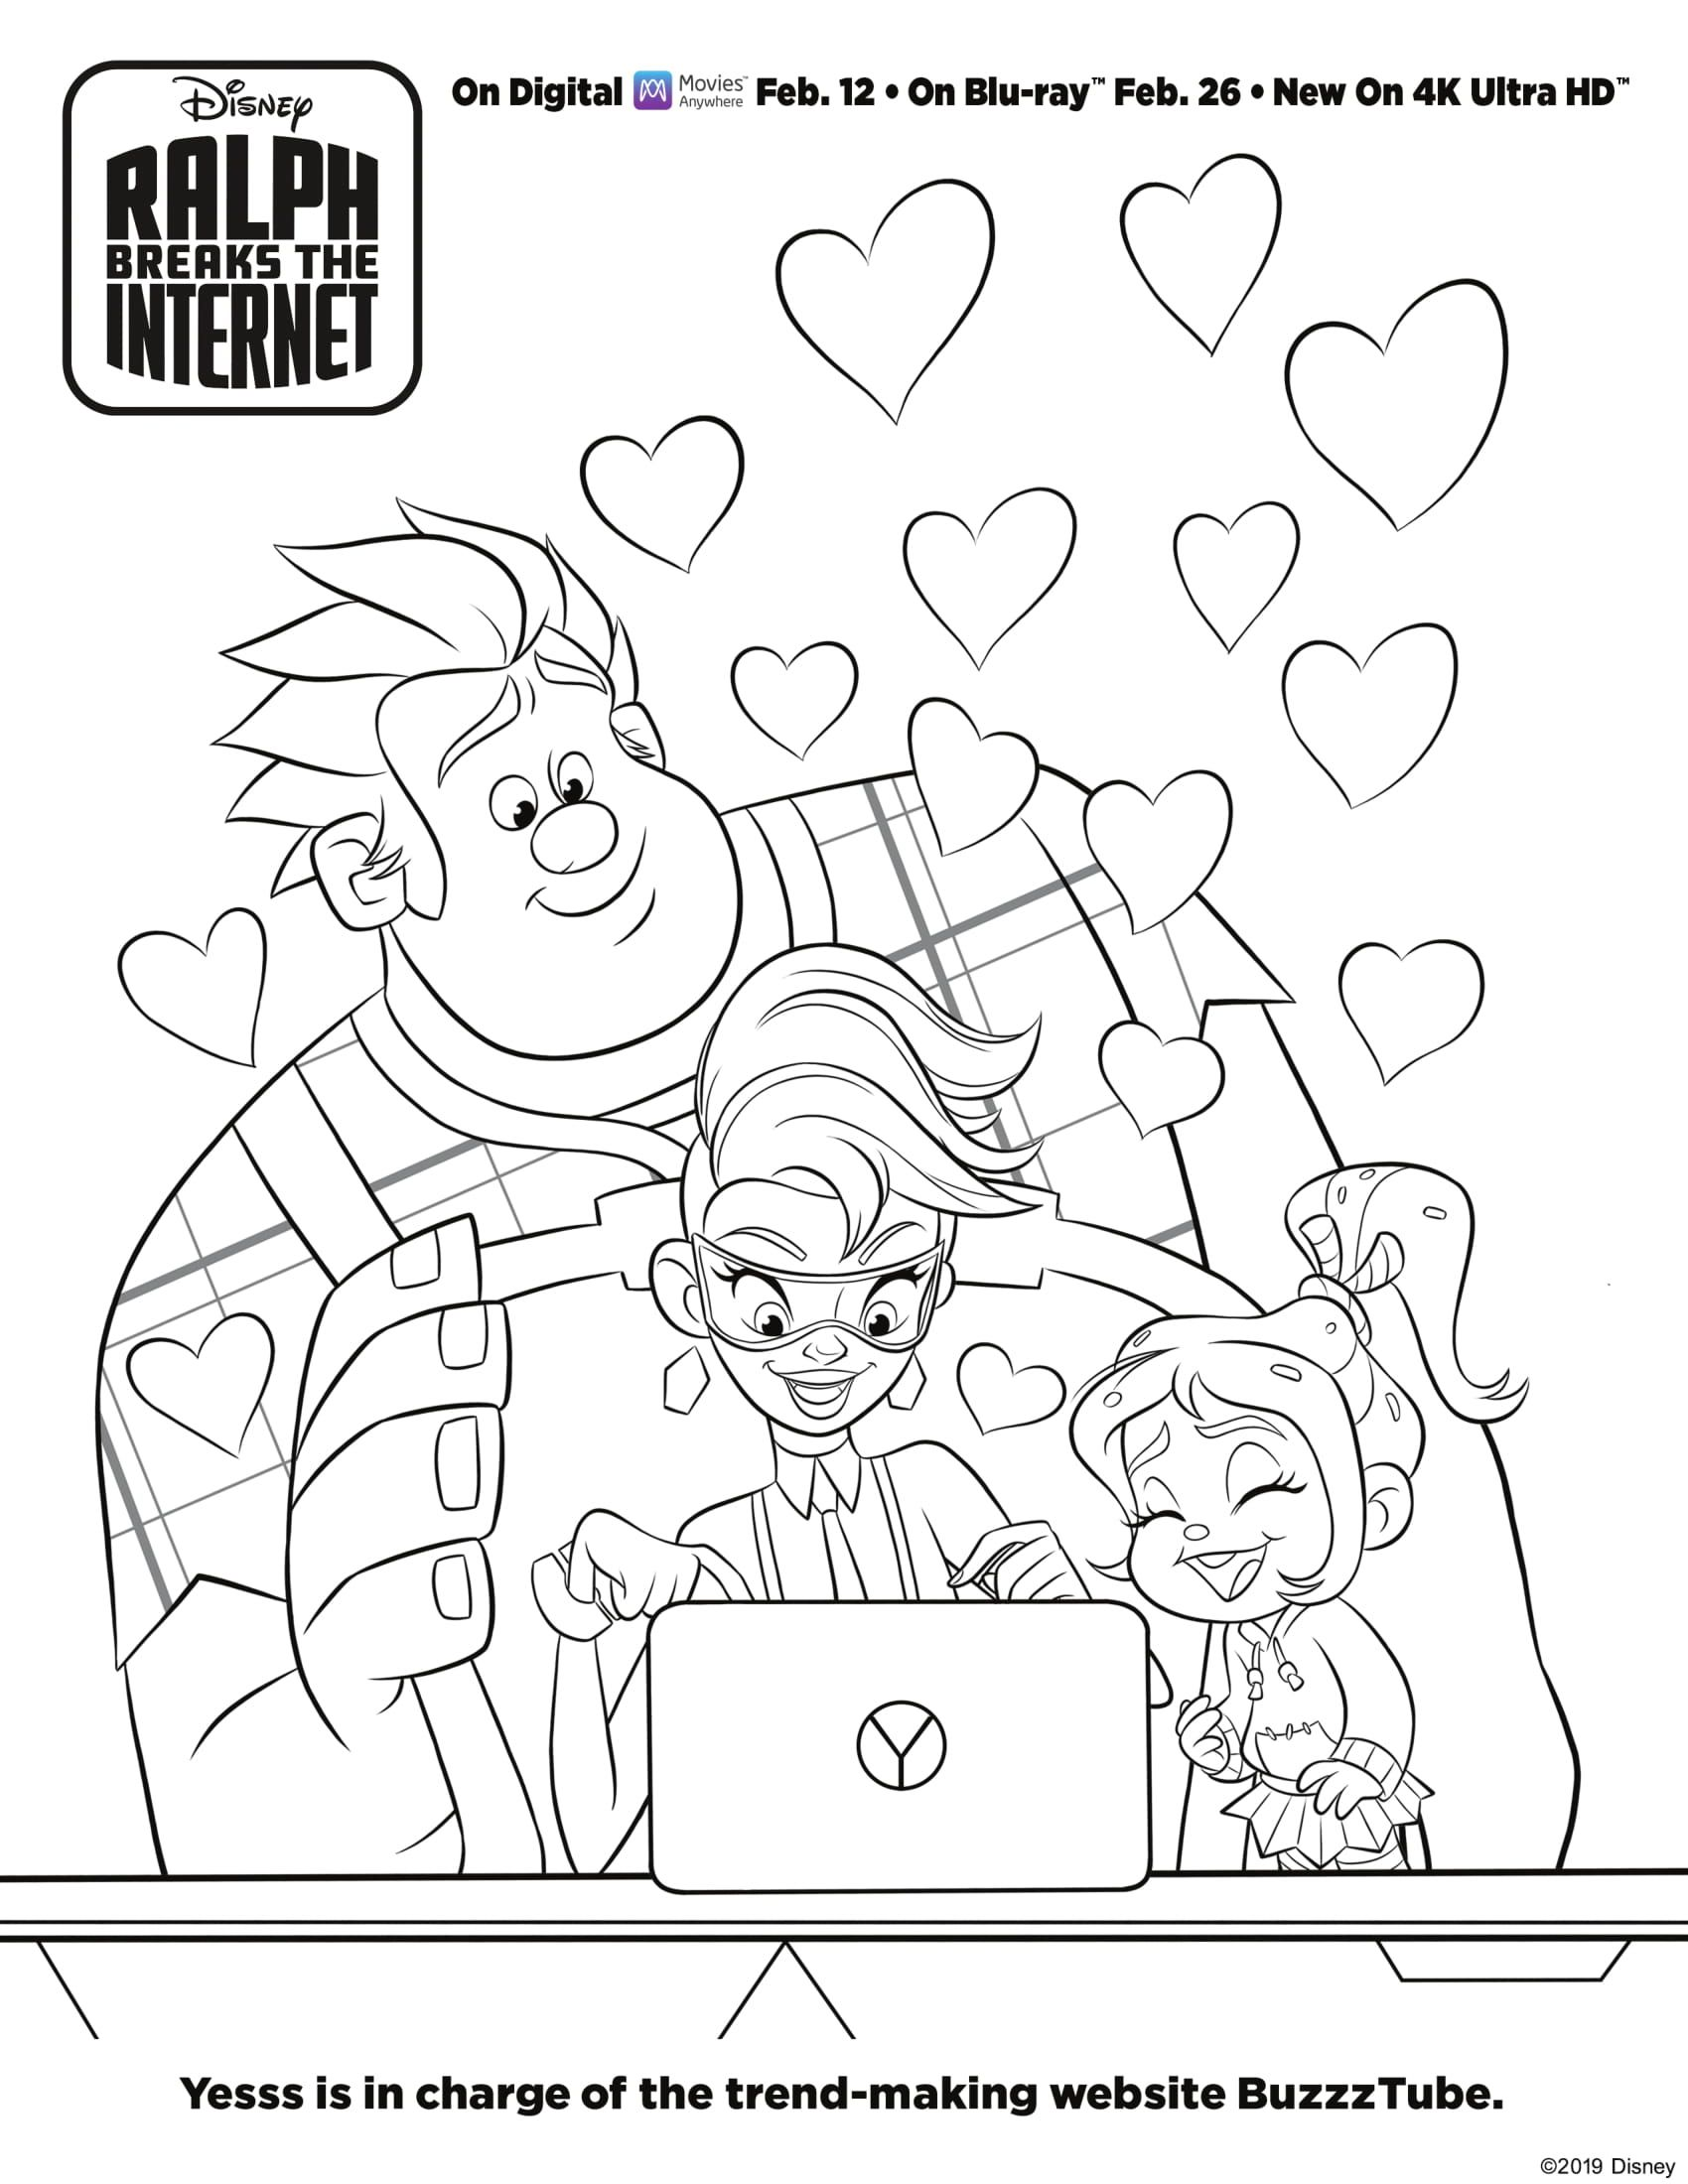 Ralph Breaks The Internet Coloring Sheet Cartoon Coloring Pages Disney Coloring Pages Princess Coloring Pages